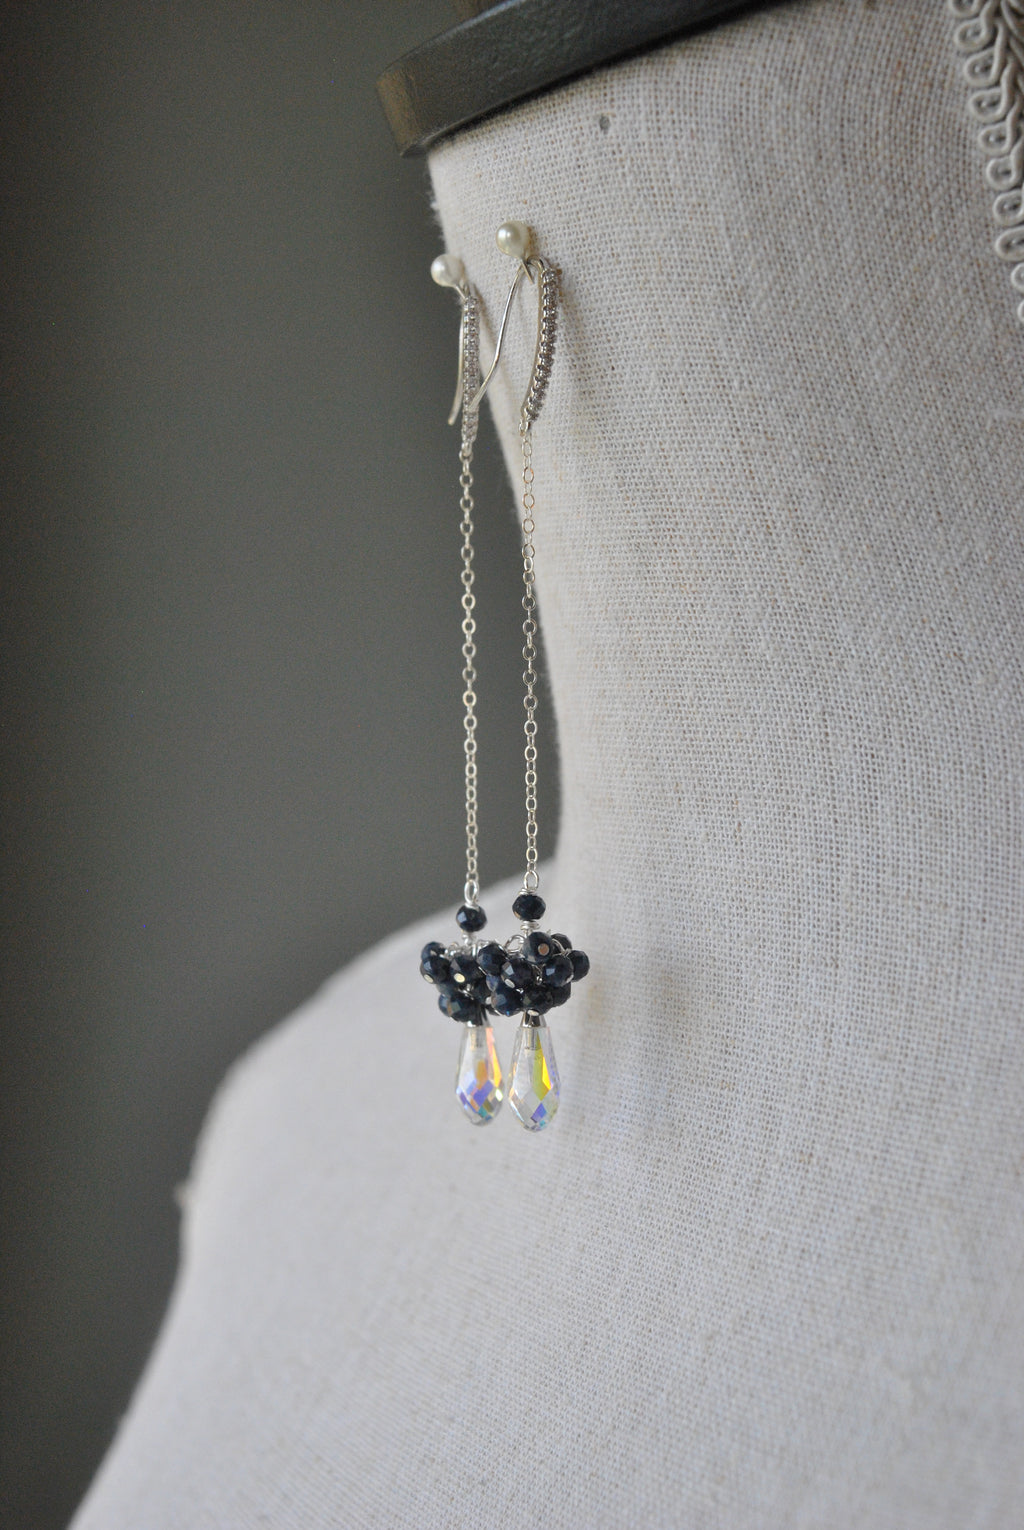 BLUE SAPPHIRE AND SWAROVSKI CRYSTALS CHAIN LONG DROP EARRINGS